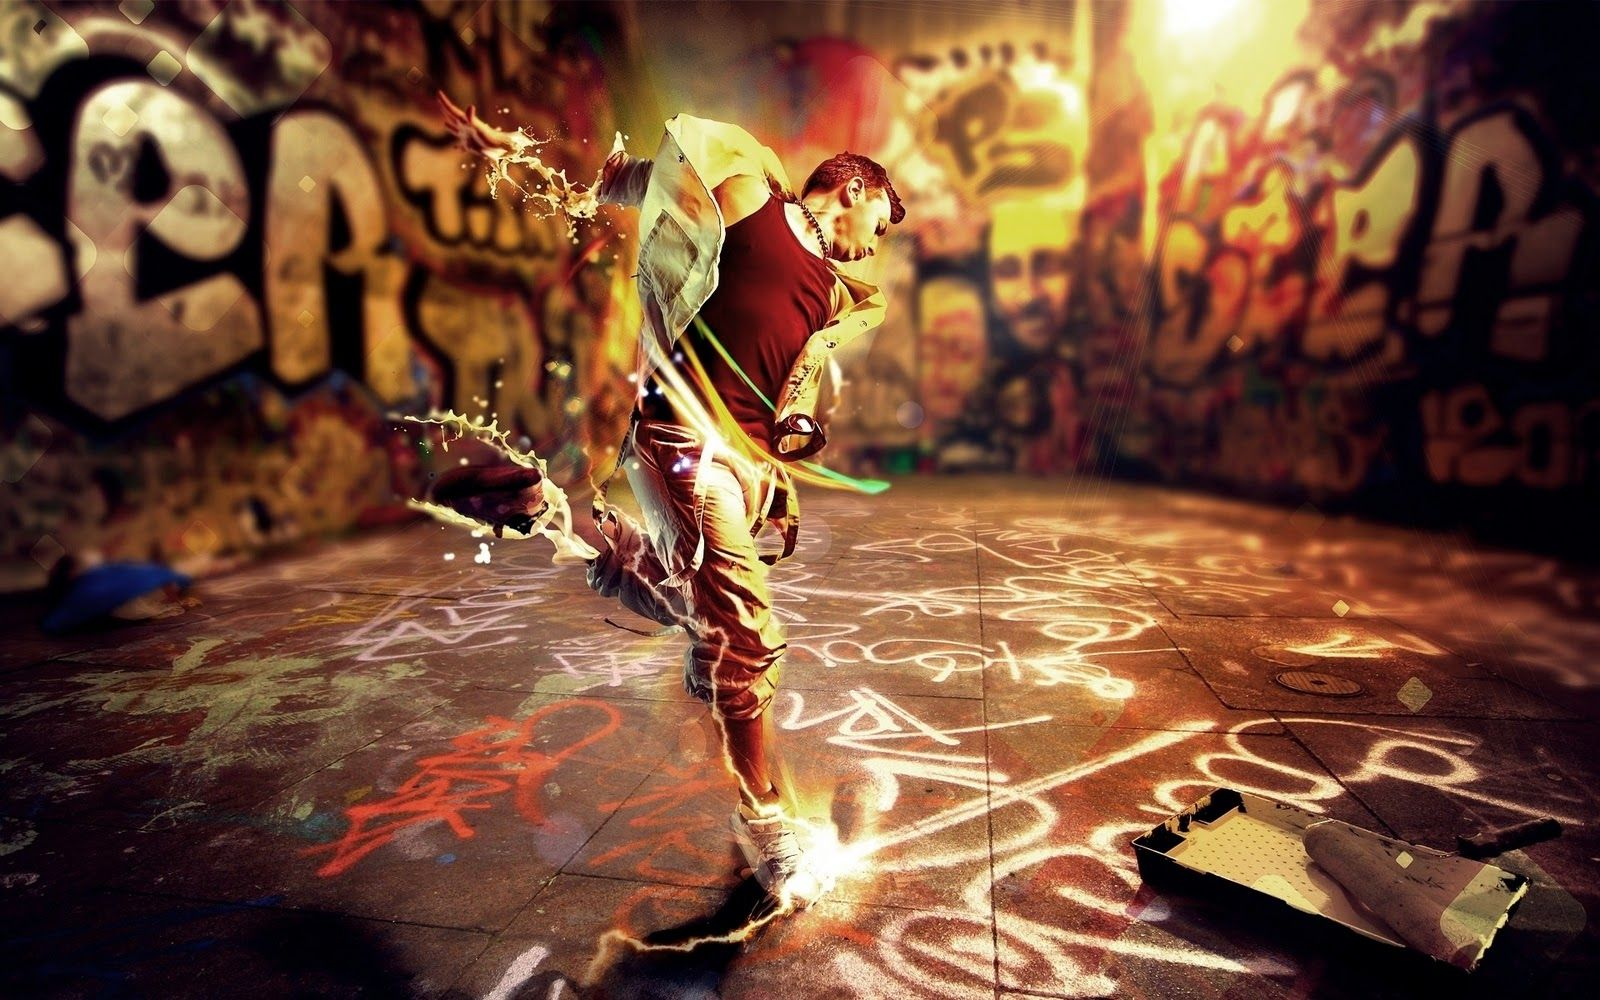 Hip Hop Graffiti Wallpaper Hd: Wallpaper Graffiti, Best Graffiti Wallpapers, Wide High